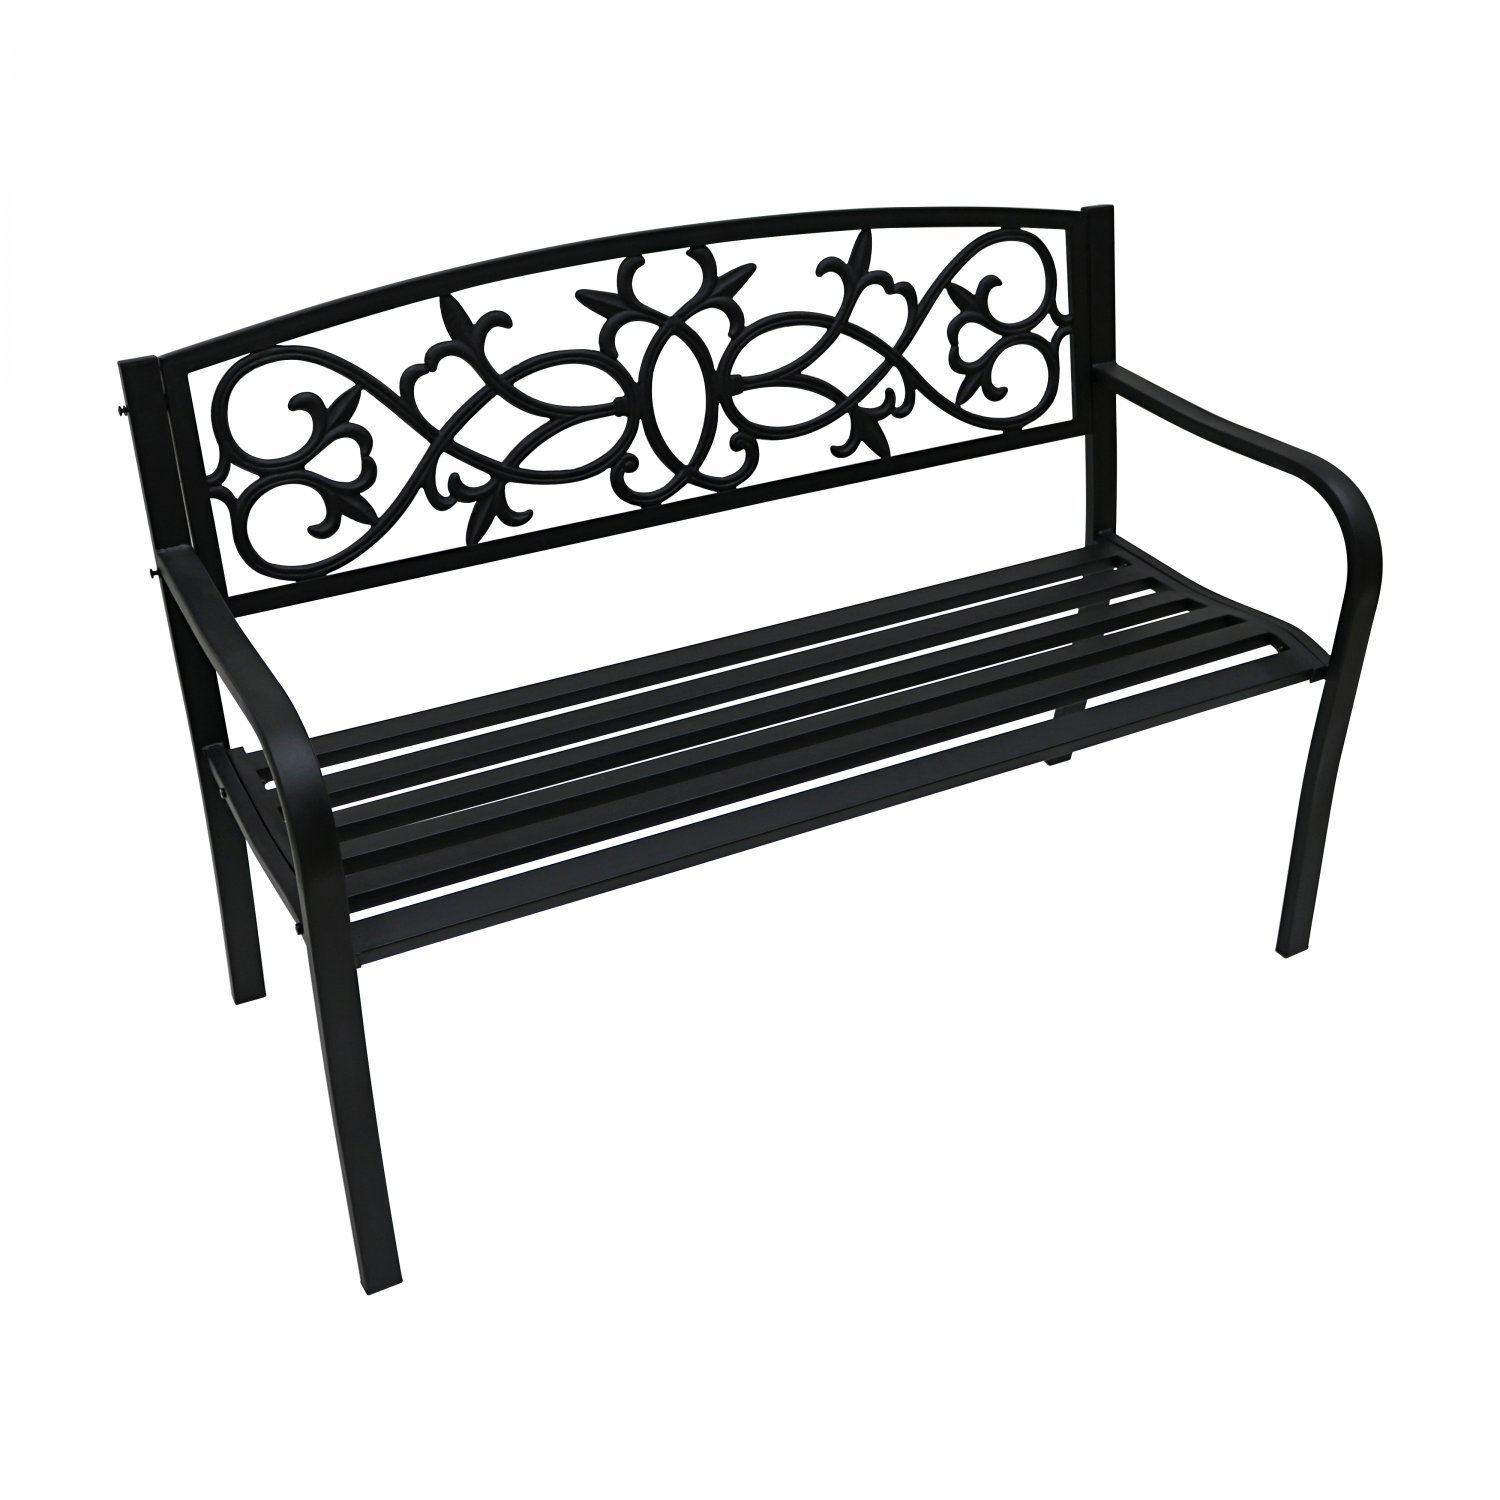 2 Seater Black Metal Outdoor Garden Bench Seat Patio Park Chair